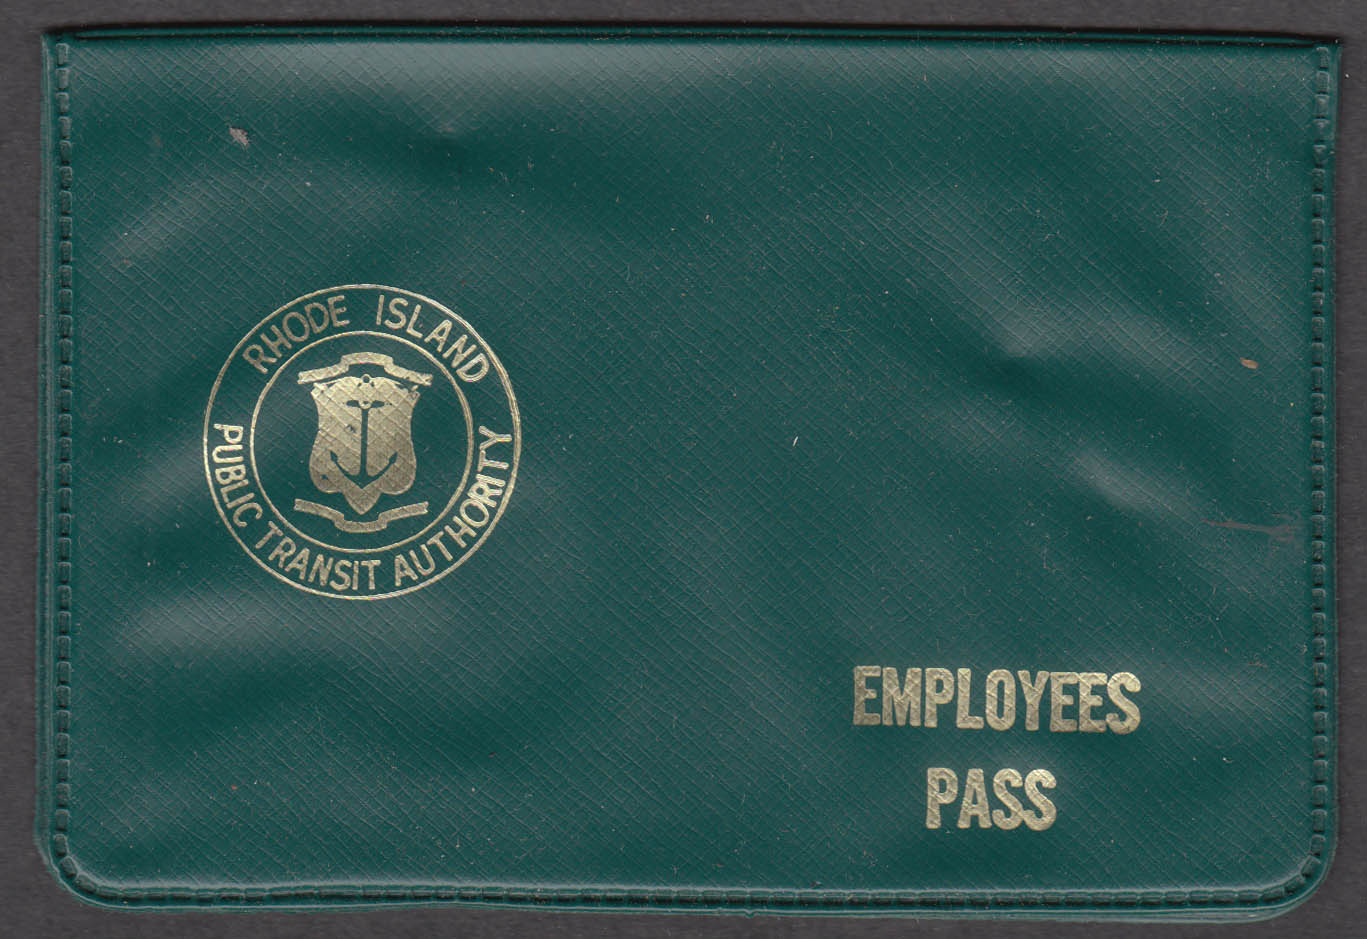 Rhode Island Public Transit Authority Employees Pass vinyl holder